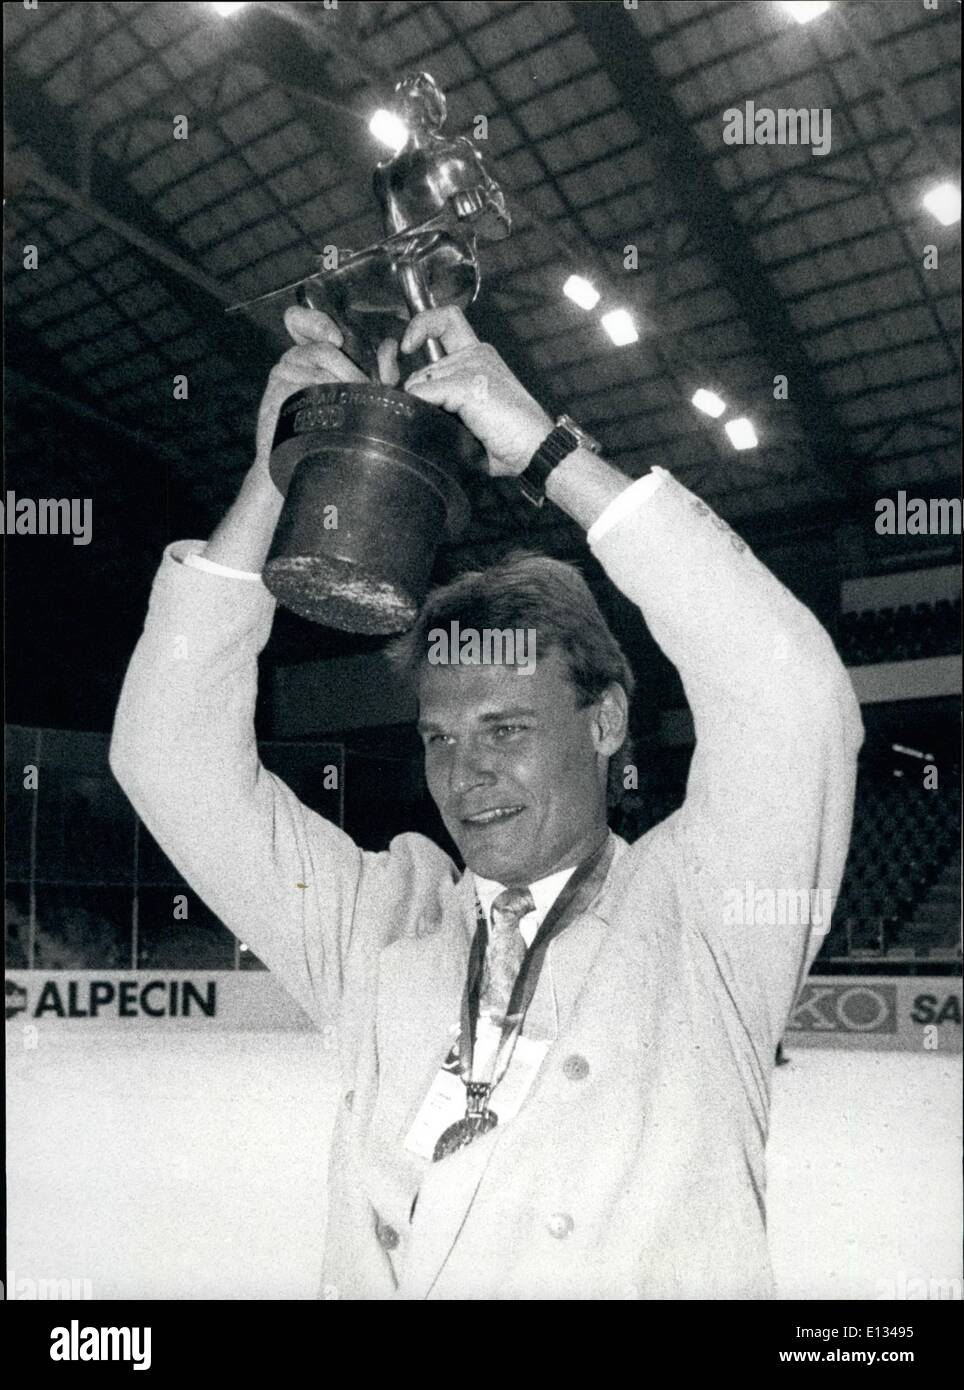 Feb. 28, 2012 - The Icehockey -World championships are actually taking place in Bern/ Switzerland. After the Qualification -round is over Canada, Sweden, Soviet union and Czechoslovakia will participate in the final competition for the title. Picture Shows: Swedish Captain Thomas Rundkvist holds up the cup after his team won the European Championships,. This tittle was given after the qualification -round. - Stock Image